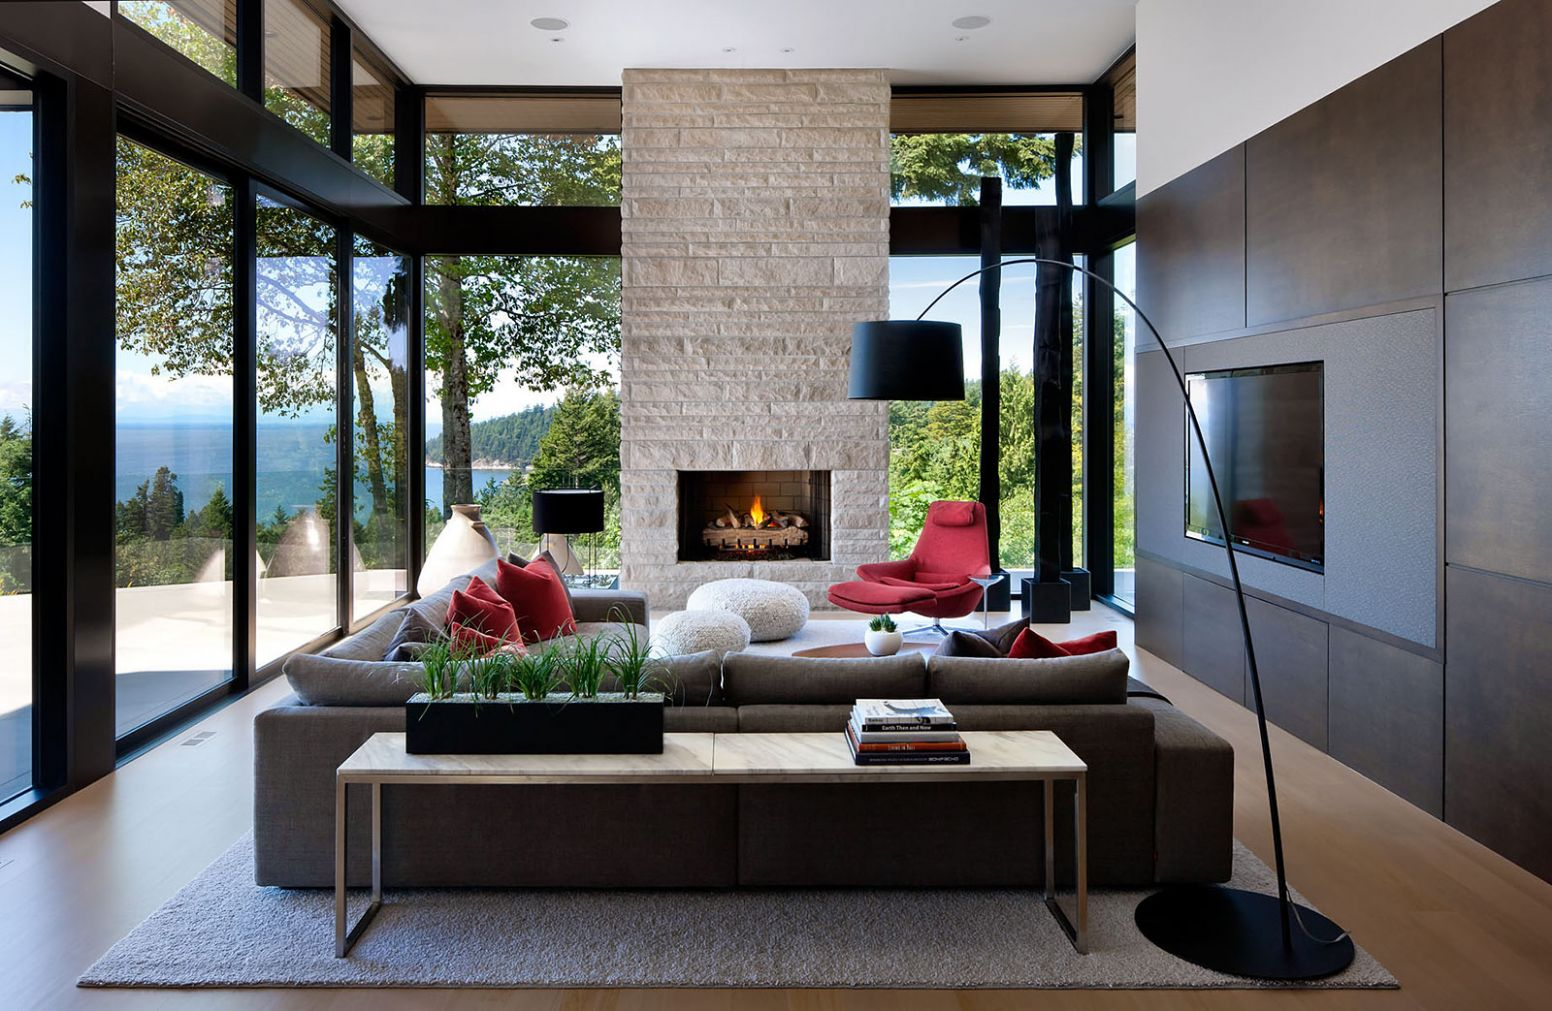 Most Popular Interior Design Styles: What's Trendy in 12 ...